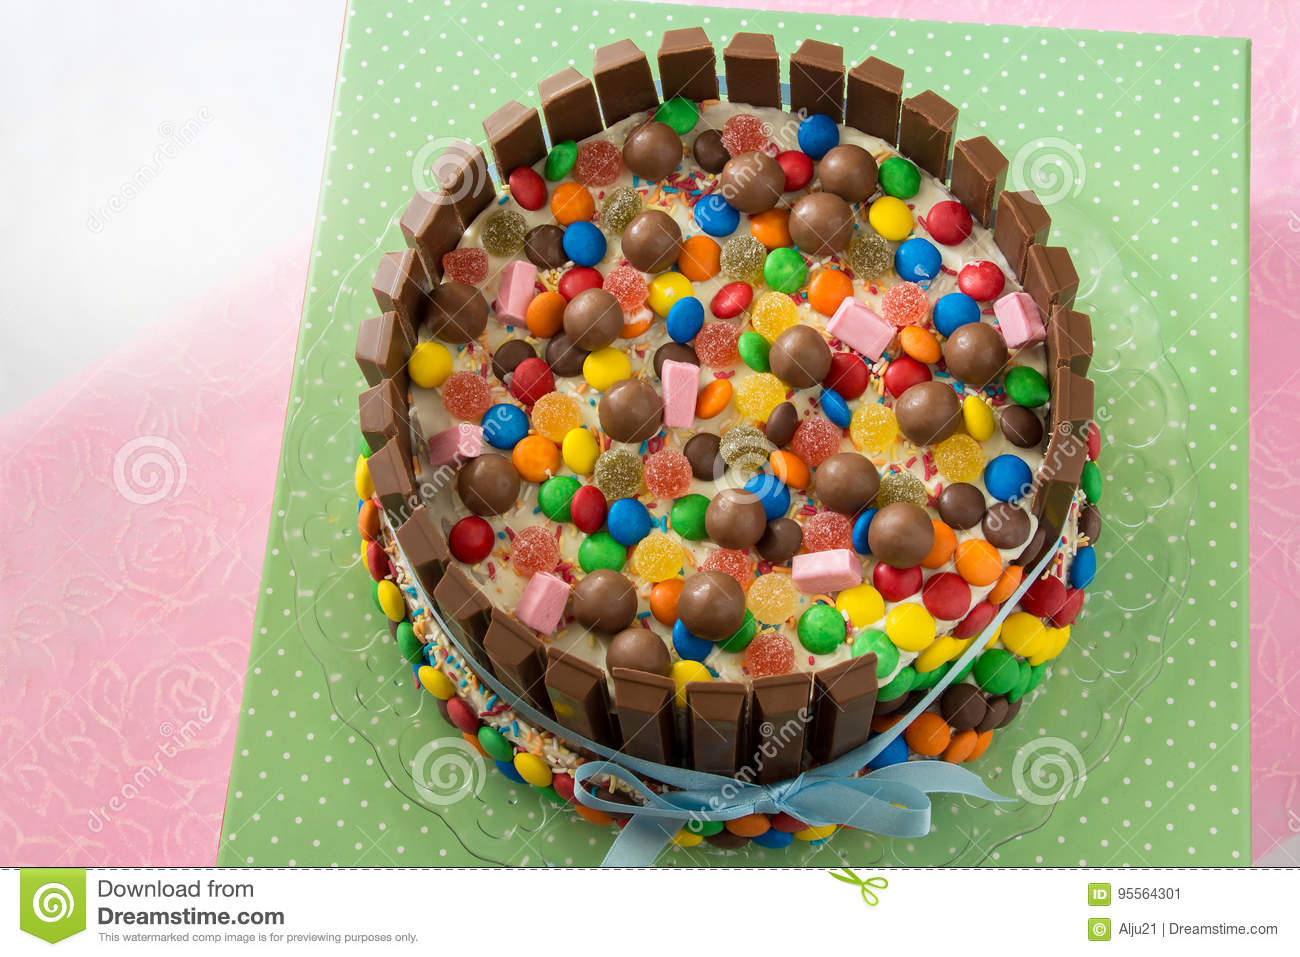 Multicolored Birthday Pinata Cake Stuffed With Sweets Inside